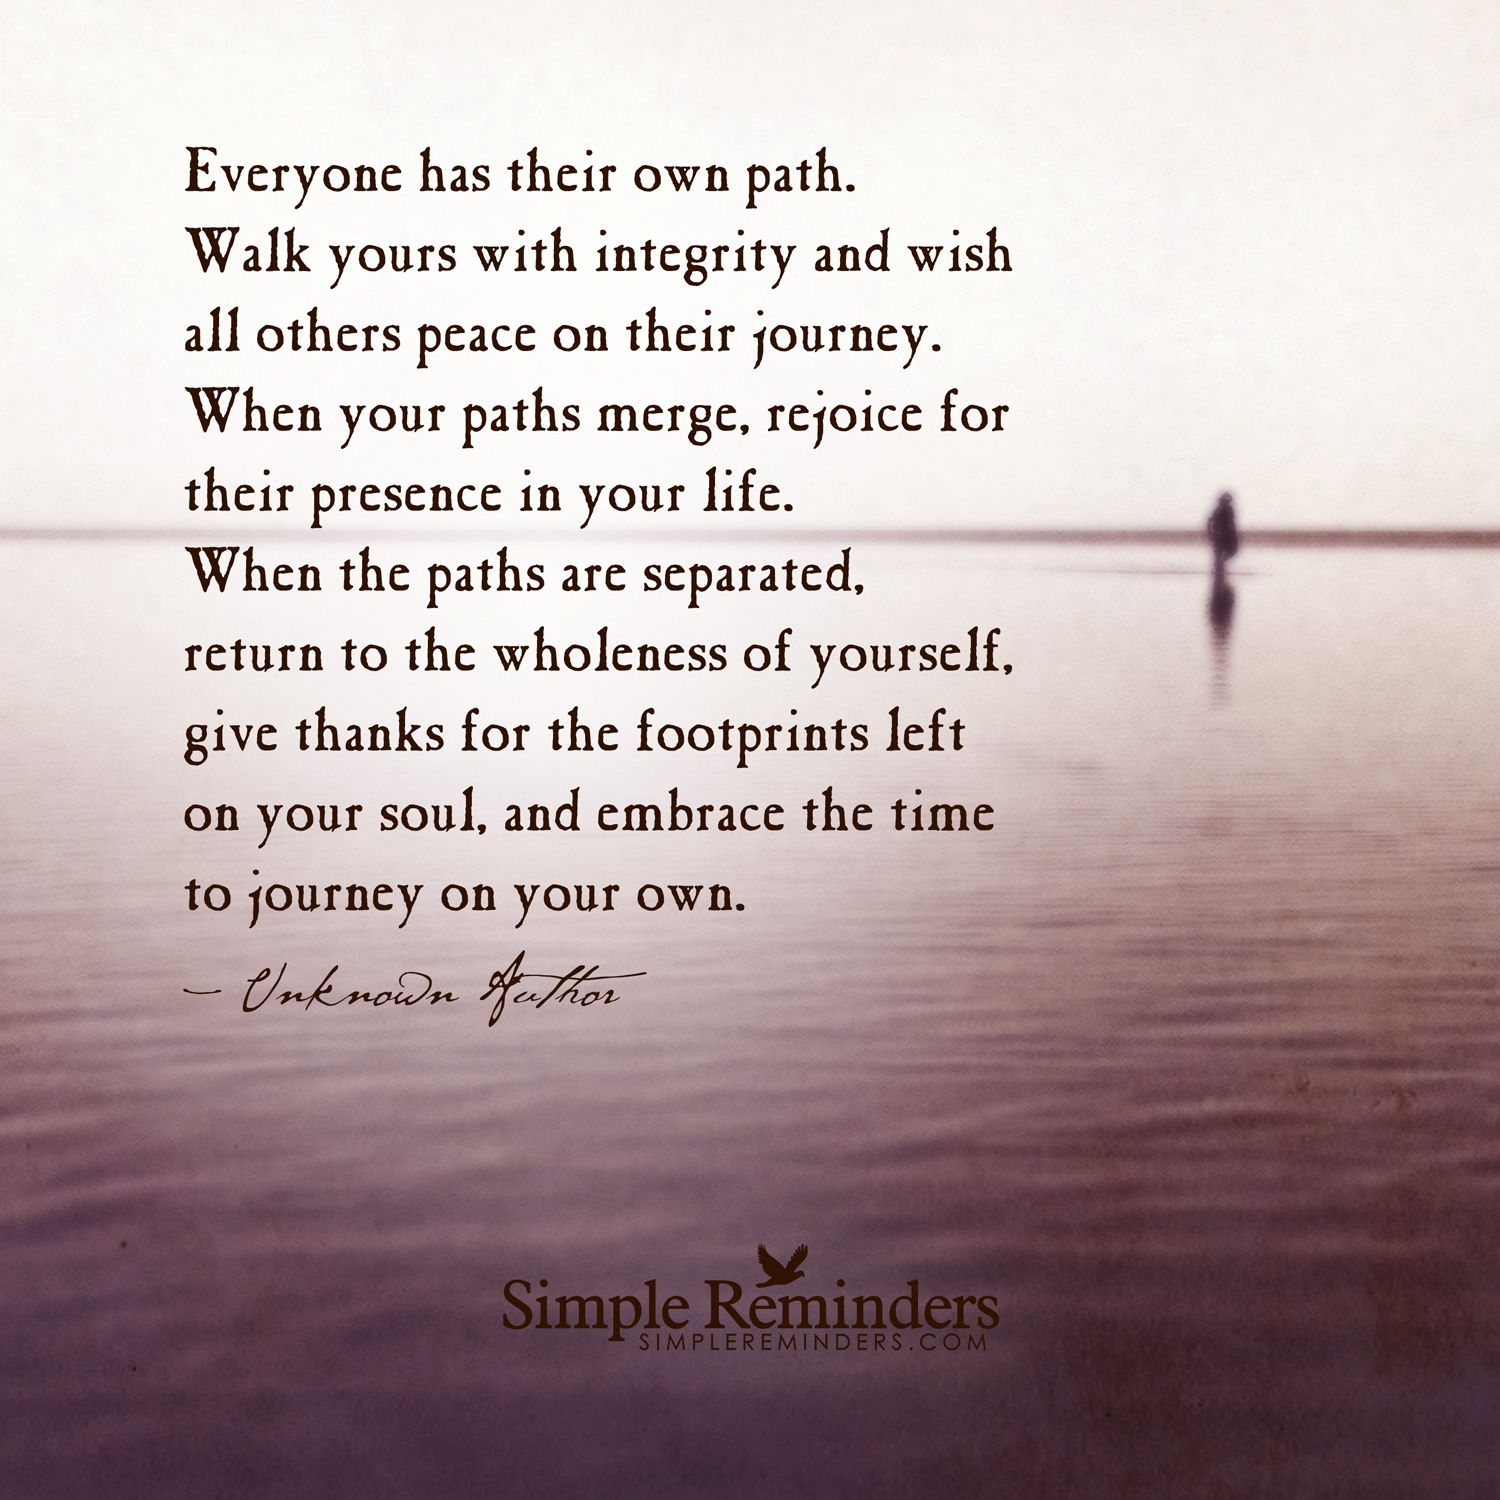 Ordinaire Simple Sayings For A Sunday! Walk Confidently And Care Deeply. Let Nothing  Deter You From Your Appointed Path! Rejoice In Those Who Find You And Those  You ...